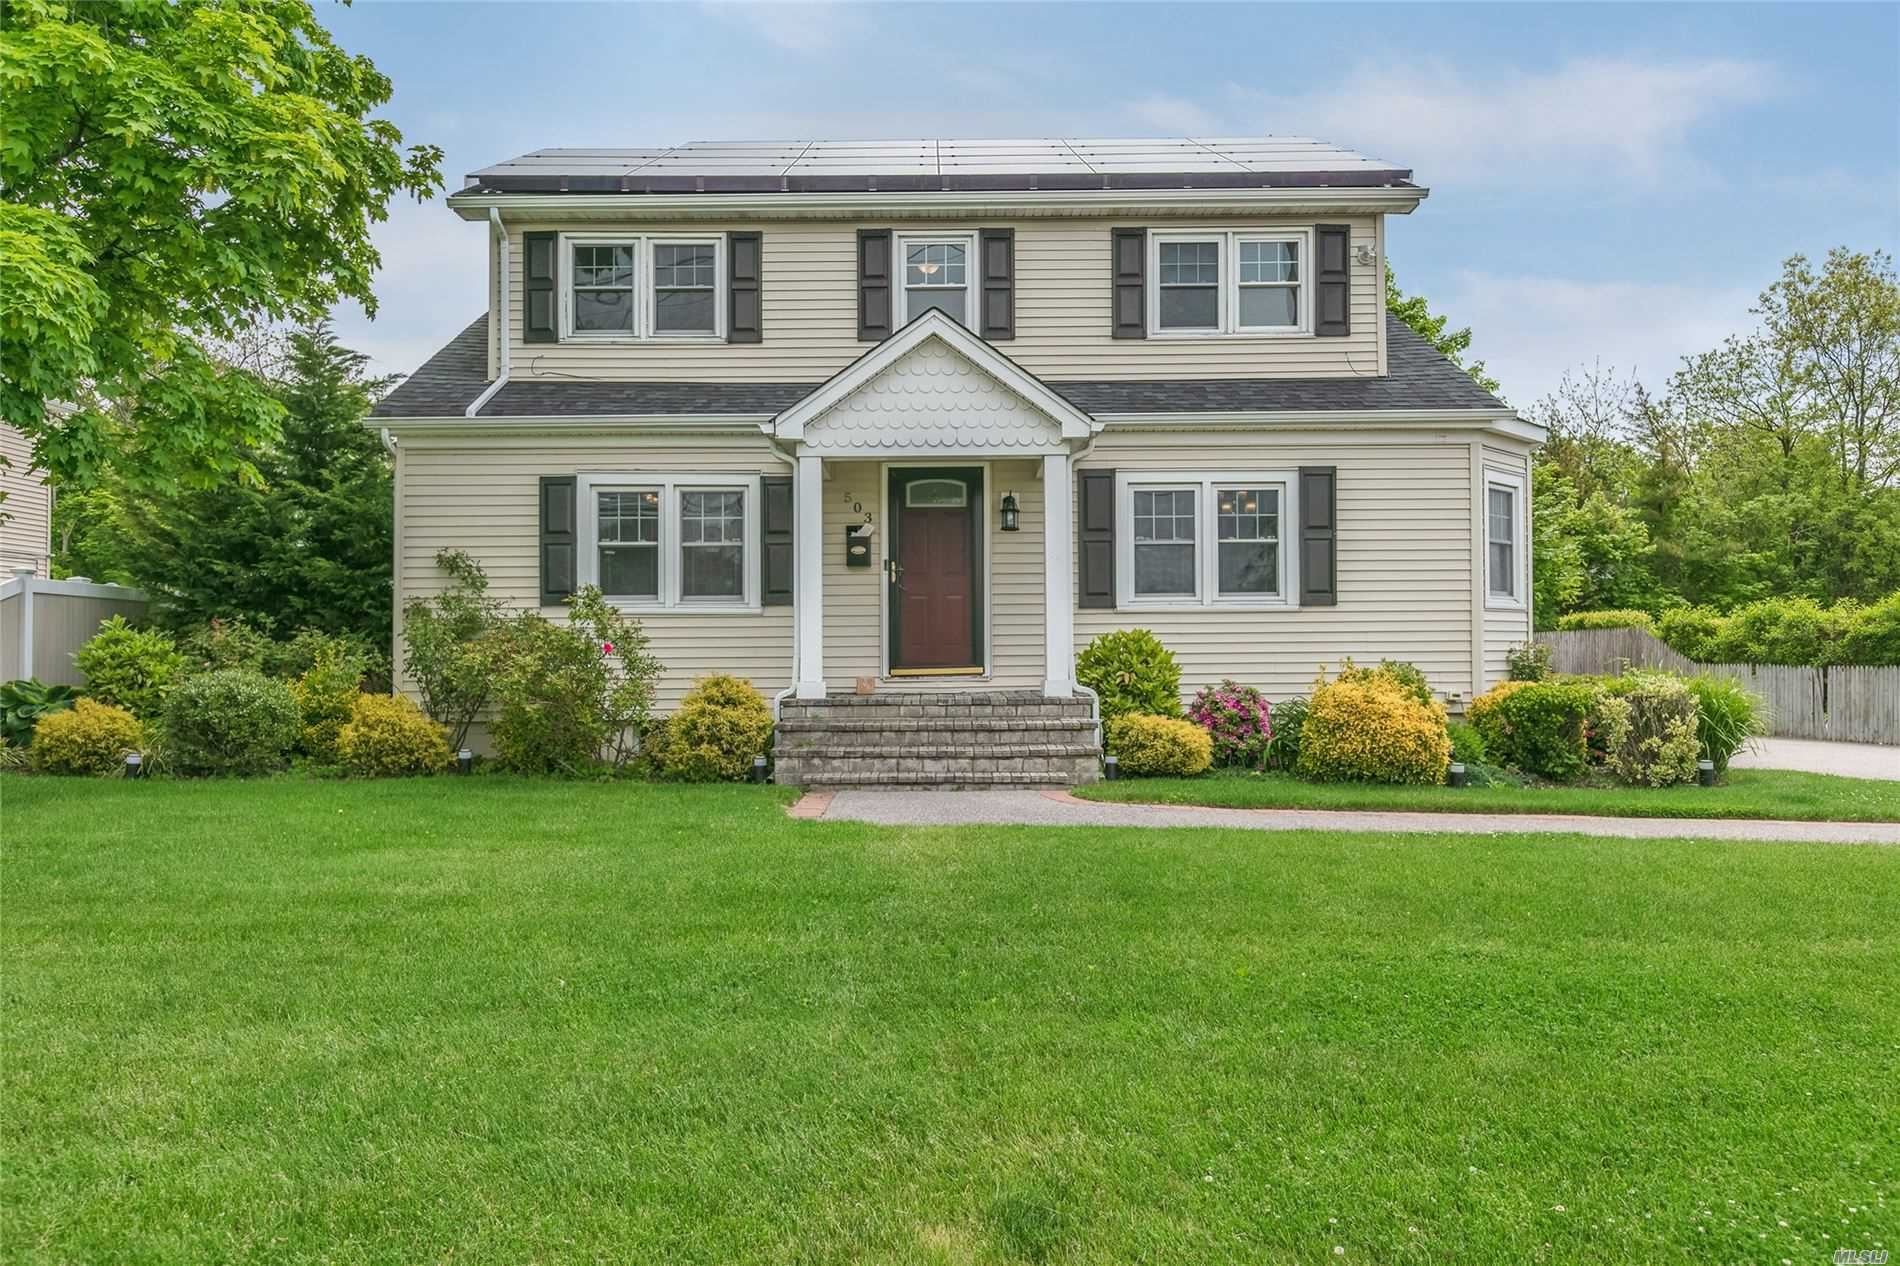 503 Pease Lane, West Islip, NY 11795 - MLS#: 3217858